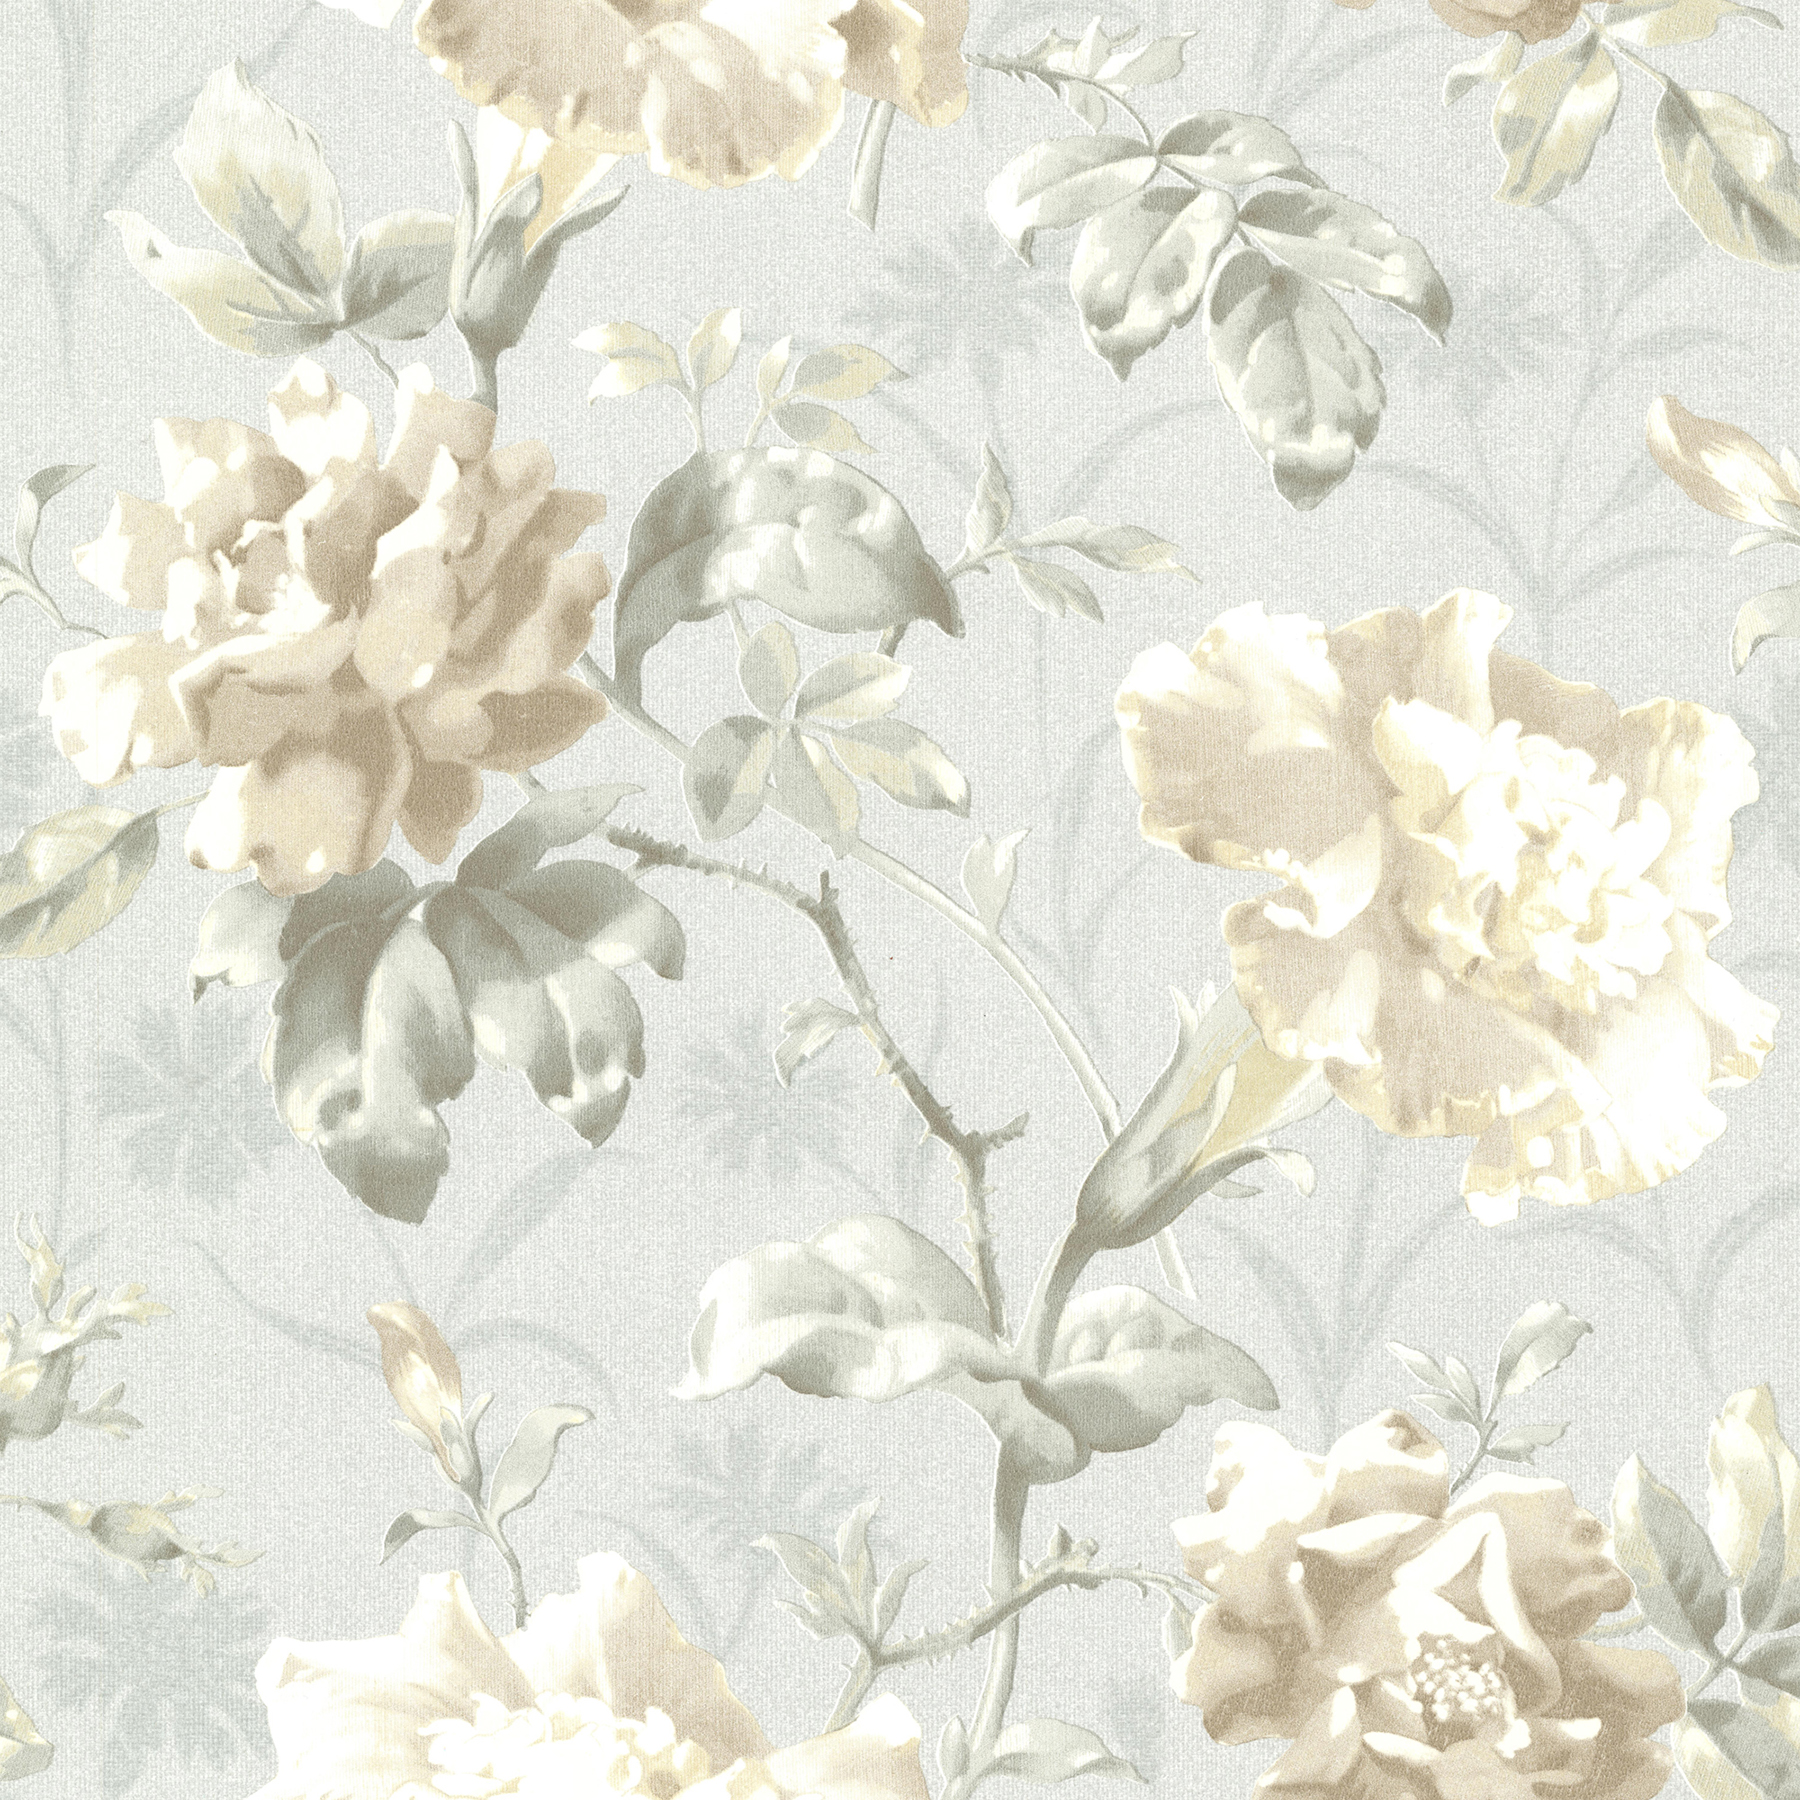 Beacon House By Brewster 2614 21000 Juliana Light Blue Vintage Floral Wallpaper The Savvy Decorator